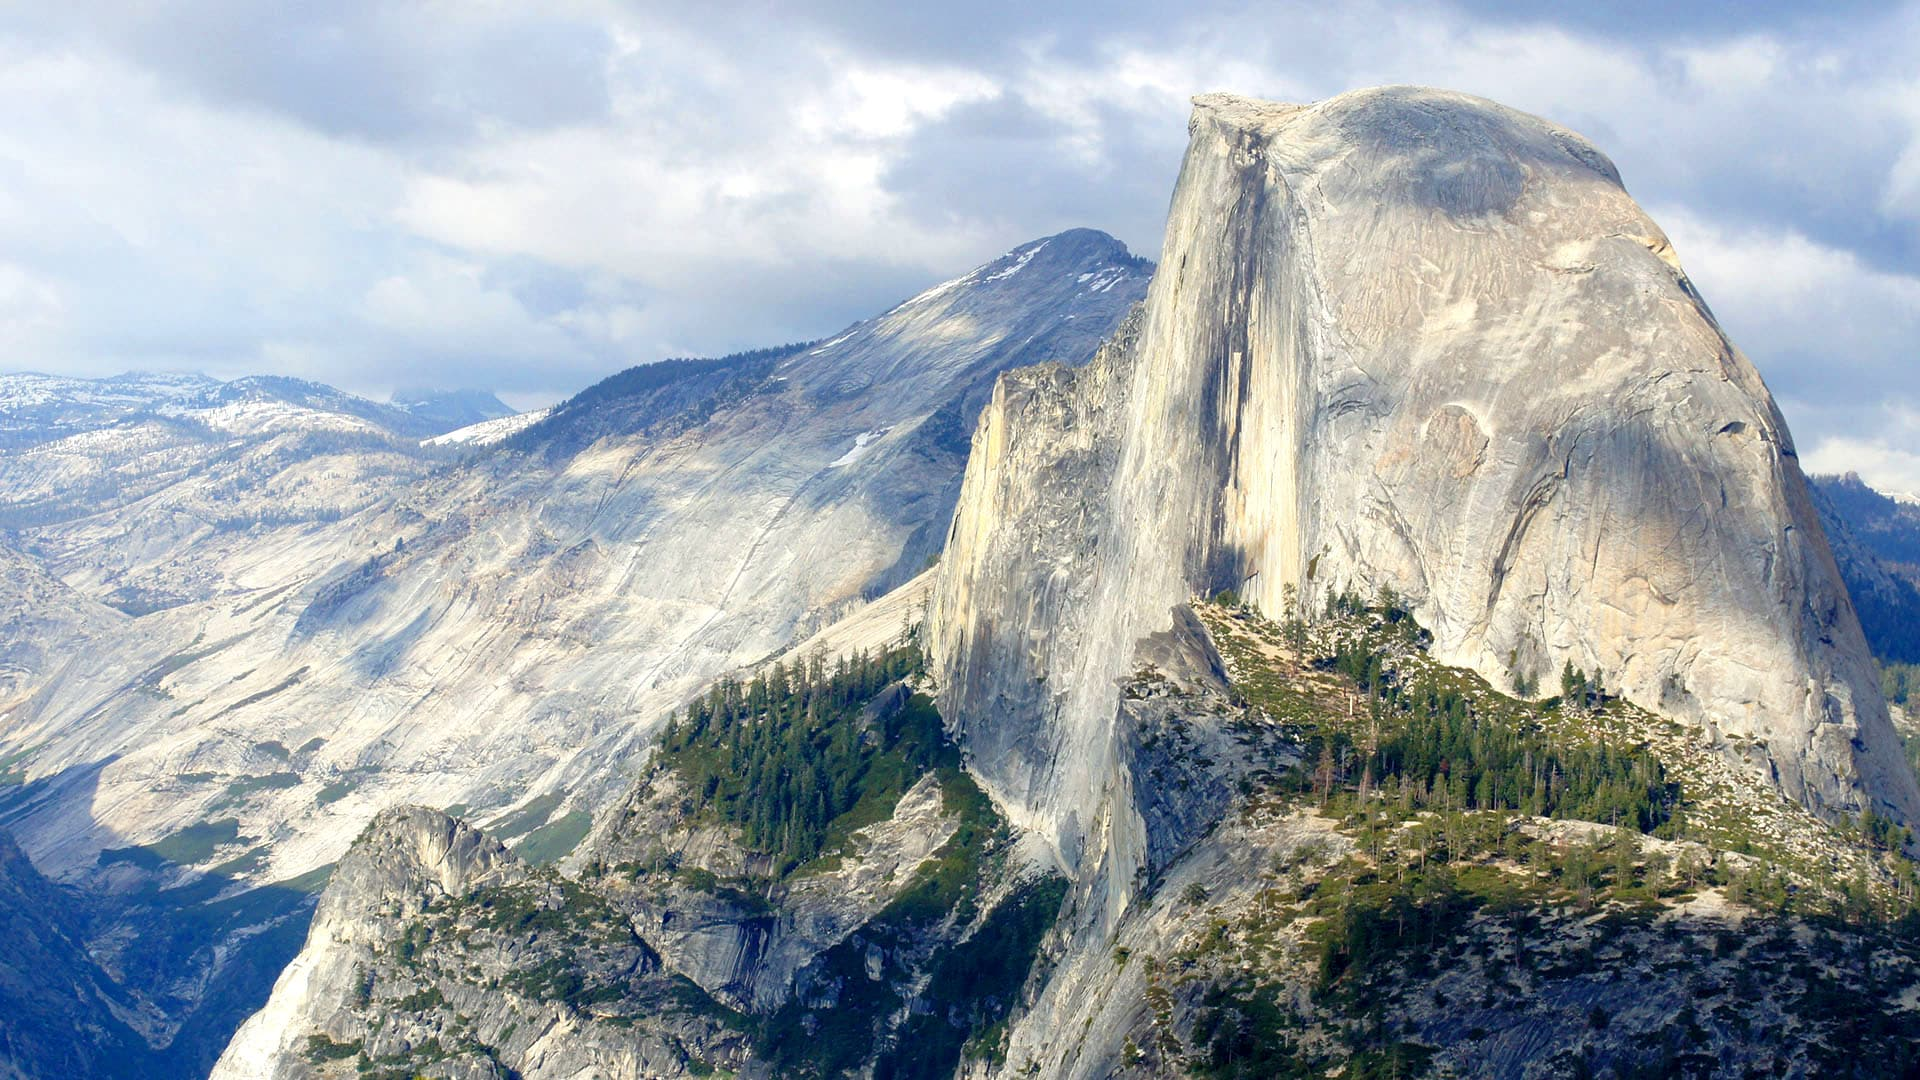 Road Trip From San Francisco To Yosemite Pursuits With